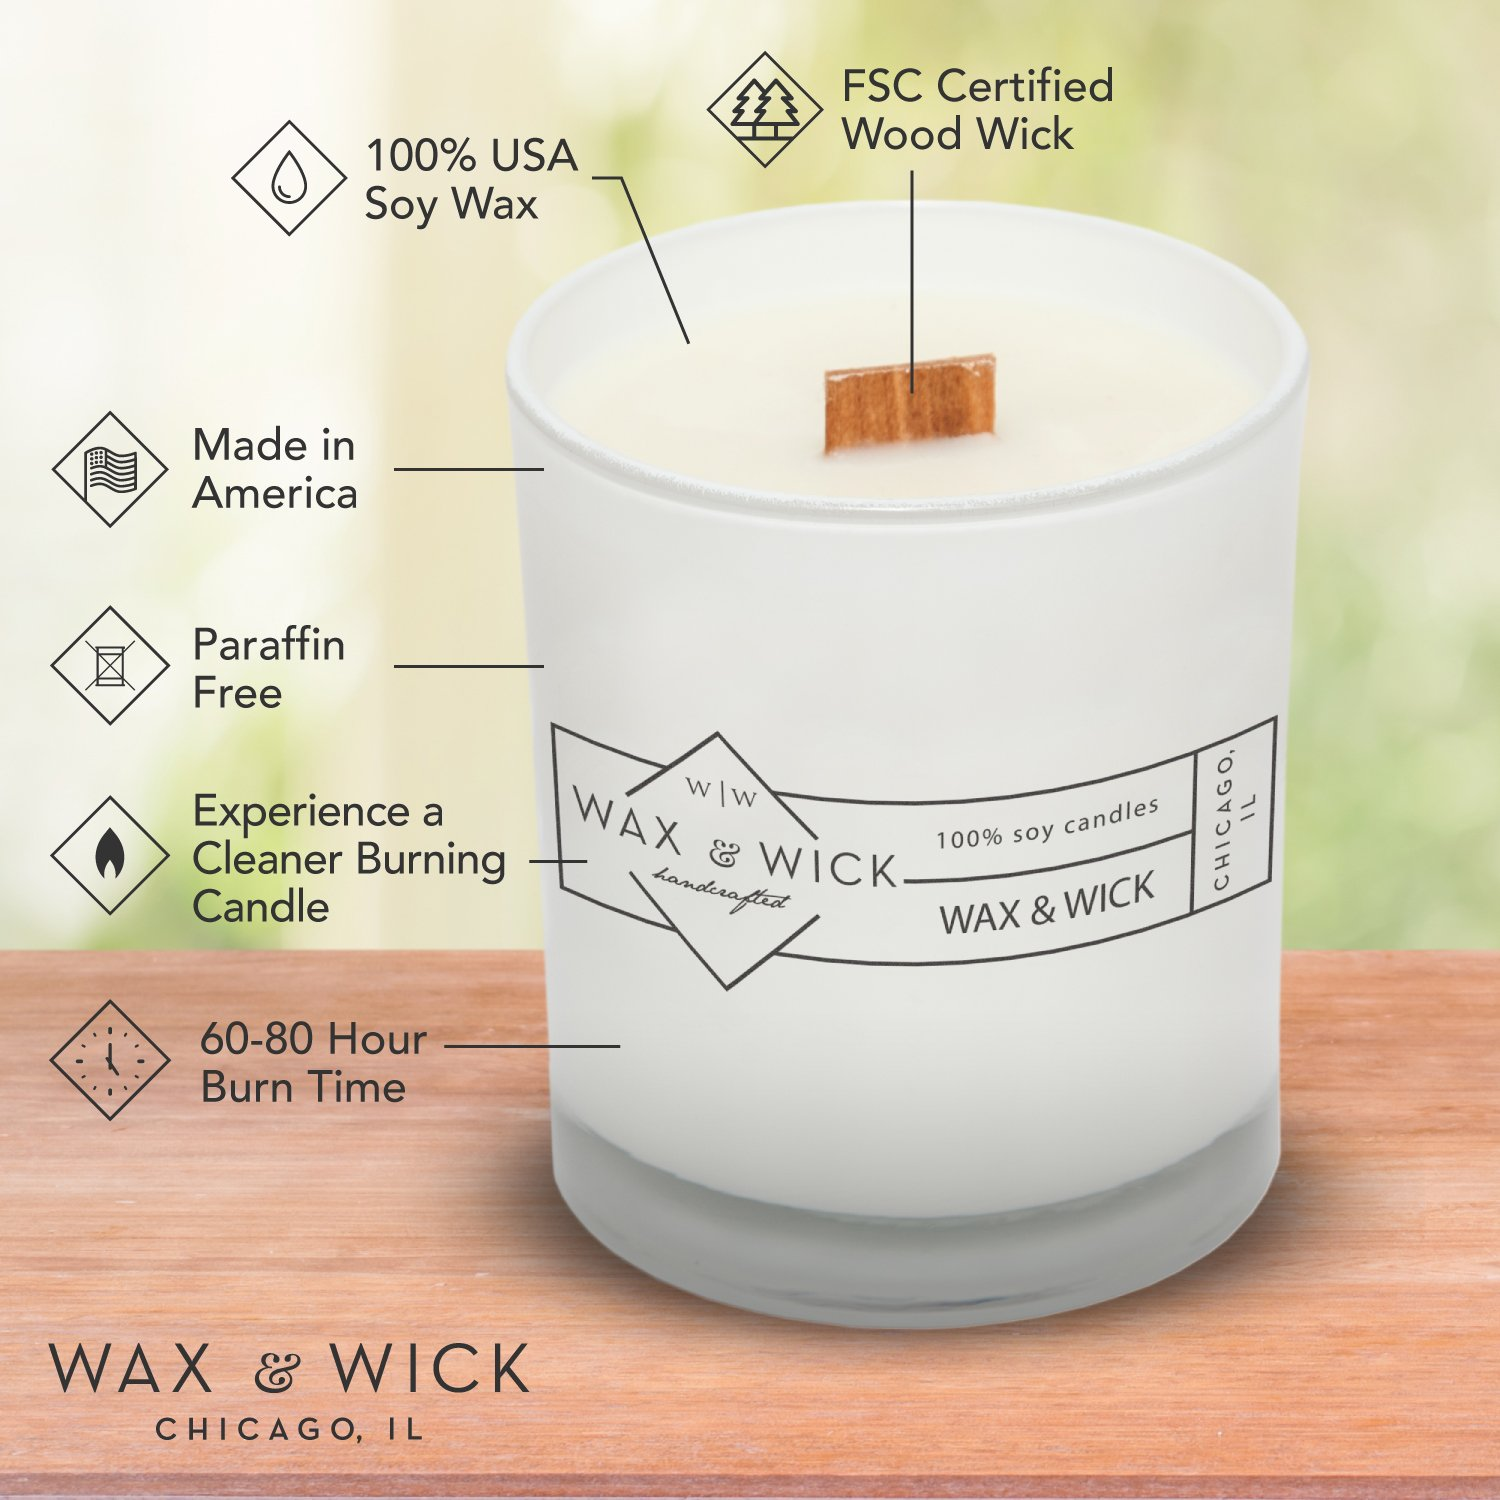 Scented Soy Candle: 100% Pure Soy Wax with Wood Double Wick | Burns Cleanly up to 60 Hrs | Mulled Cider Scent - Notes of Apple, Nutmeg, Vanilla, Caramel. | 12 oz Black Jar by Wax and Wick by Wax & Wick (Image #9)